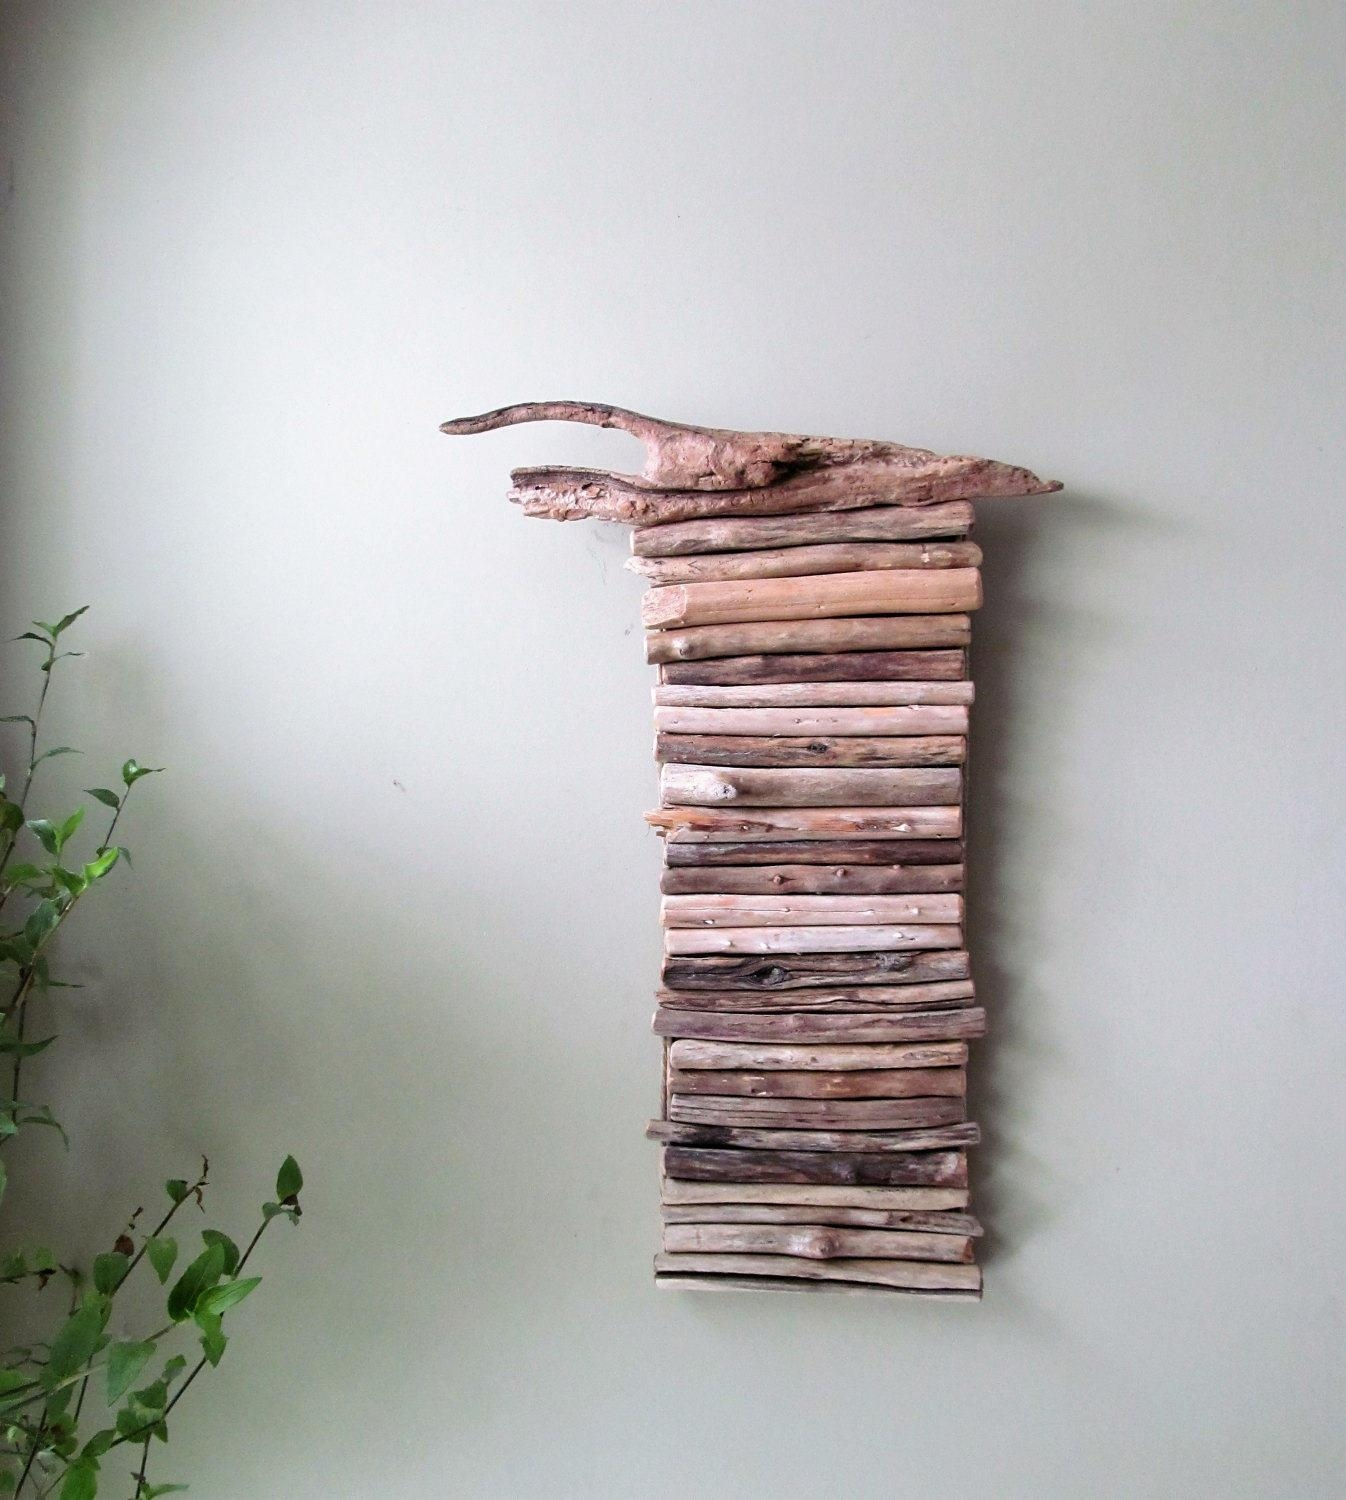 Trend Large Driftwood Wall Art 27 For Your Image With Large Regarding Large Driftwood Wall Art (View 8 of 20)